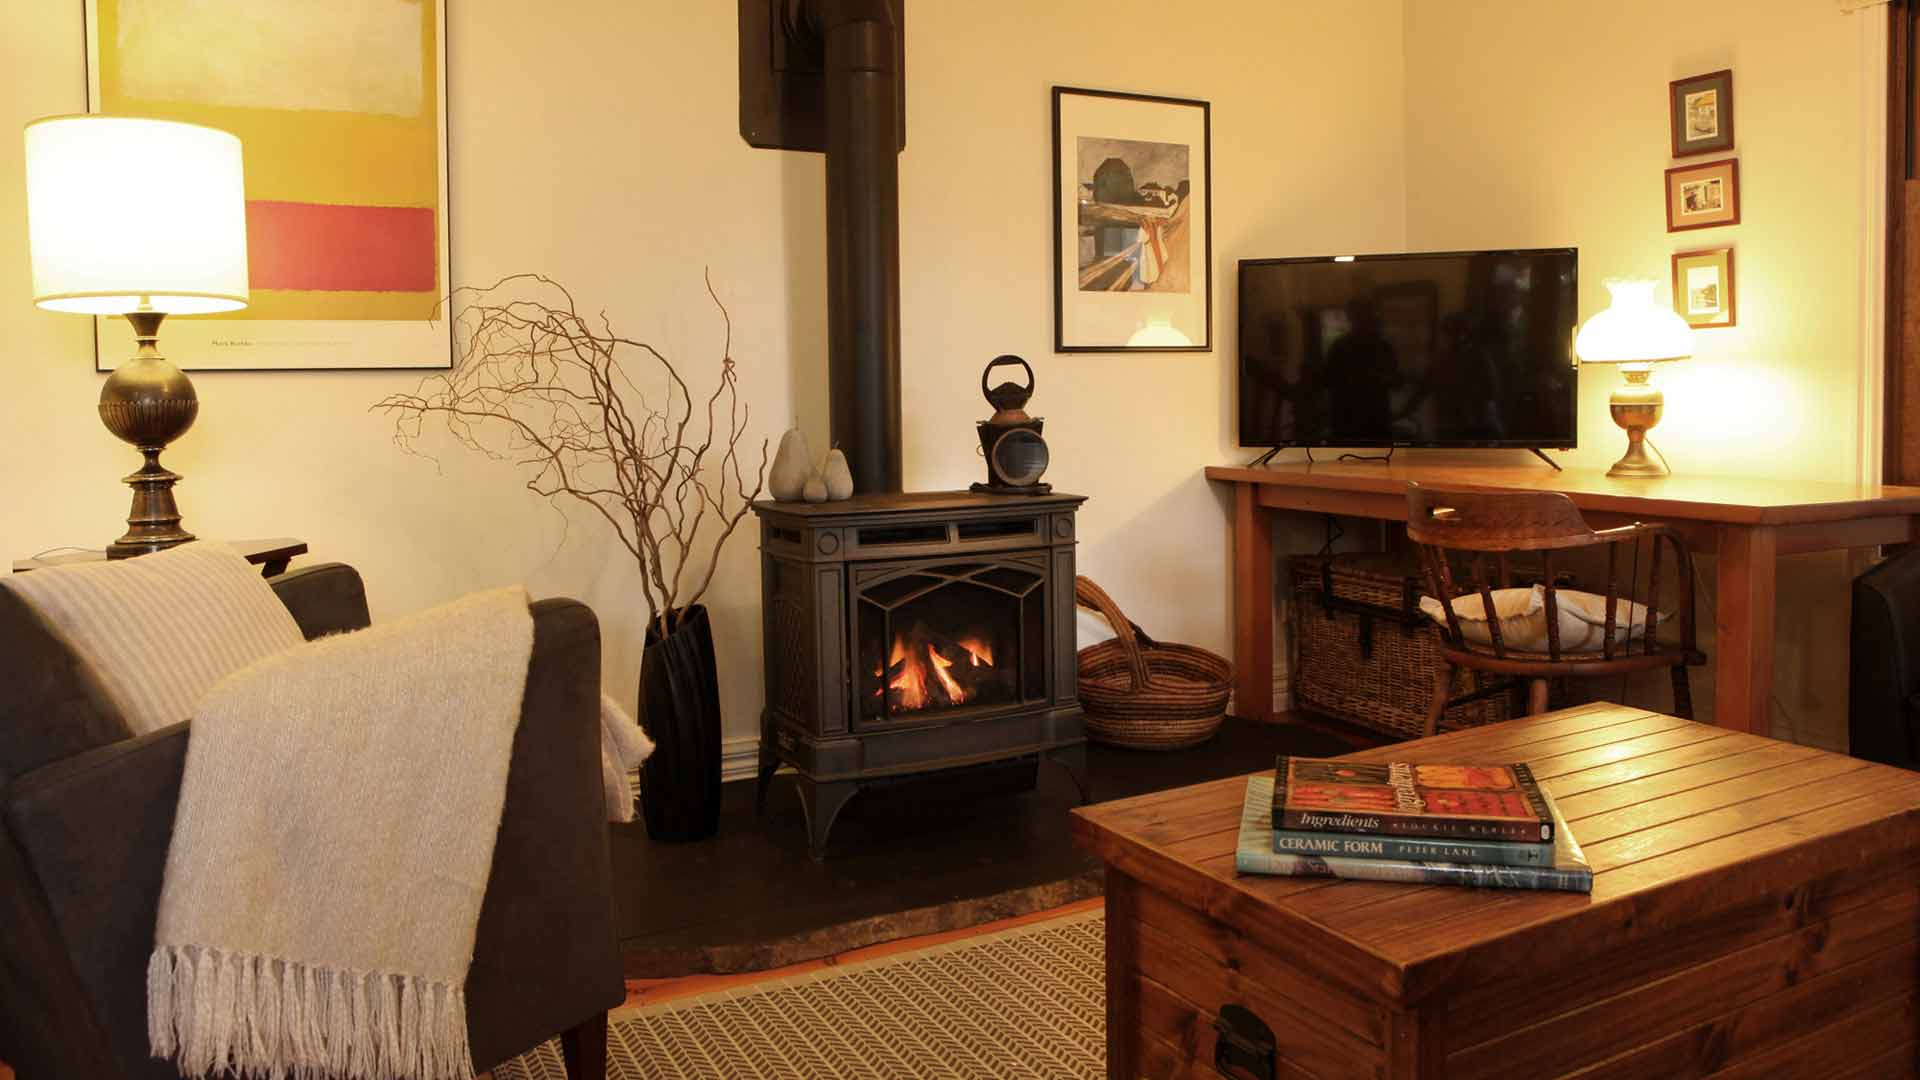 The Lounge with fire